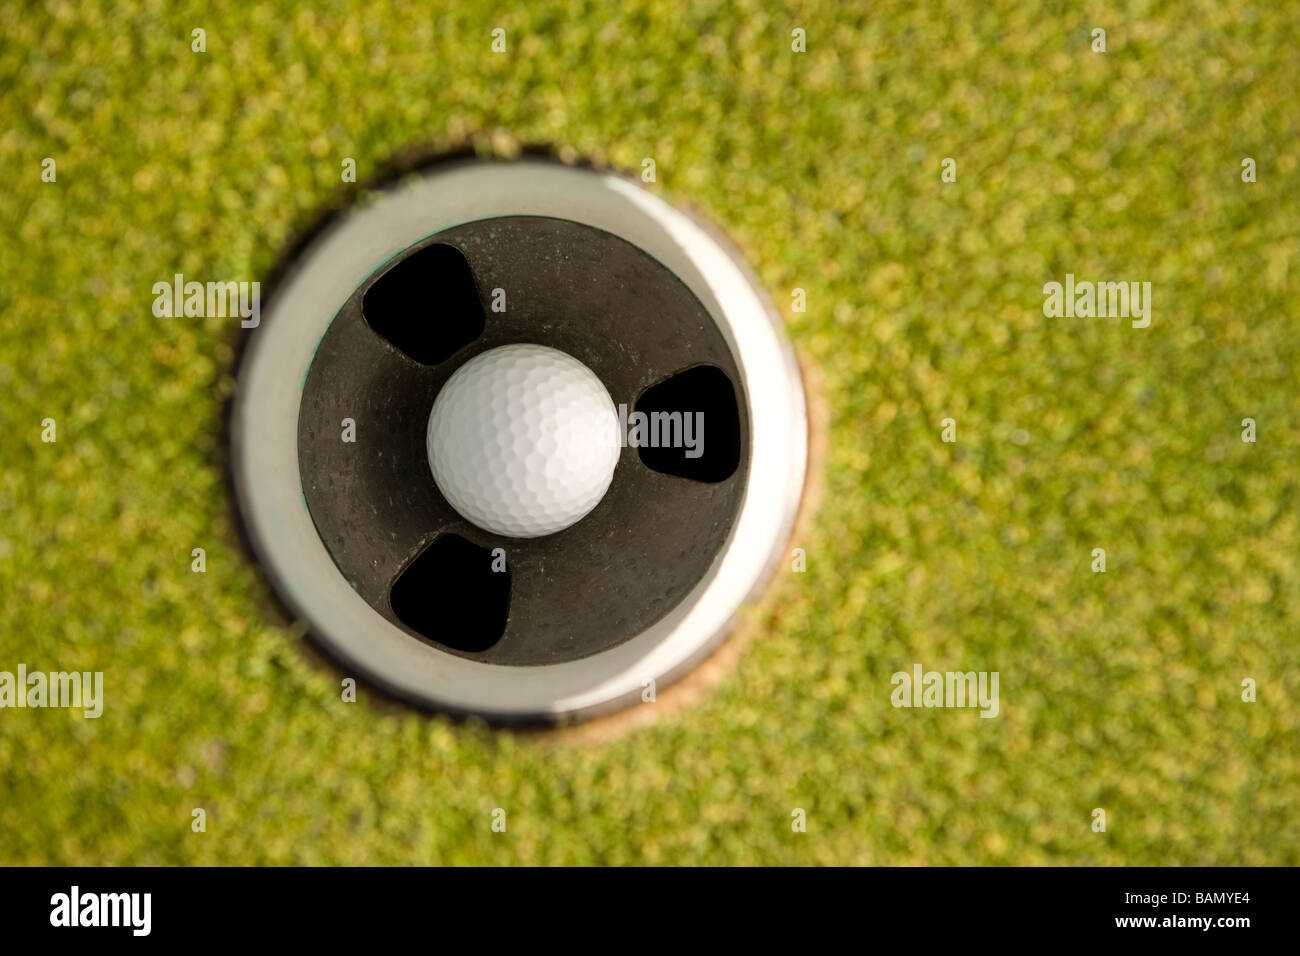 Golf ball in hole - Stock Image